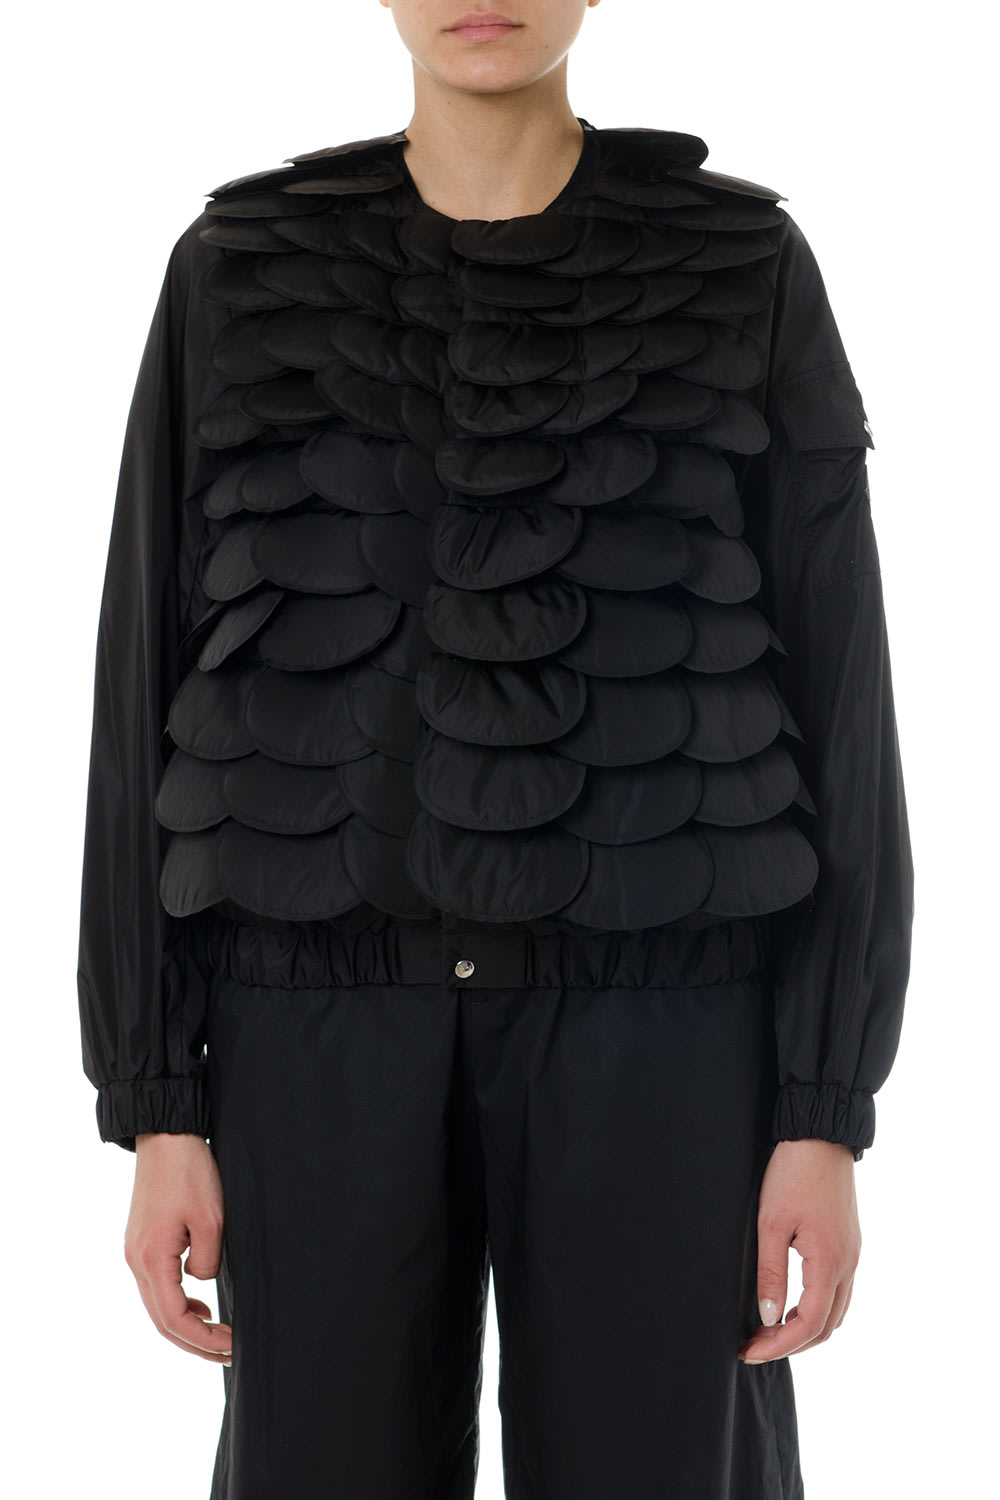 Moncler Genius Black Padded Scallop Jacket